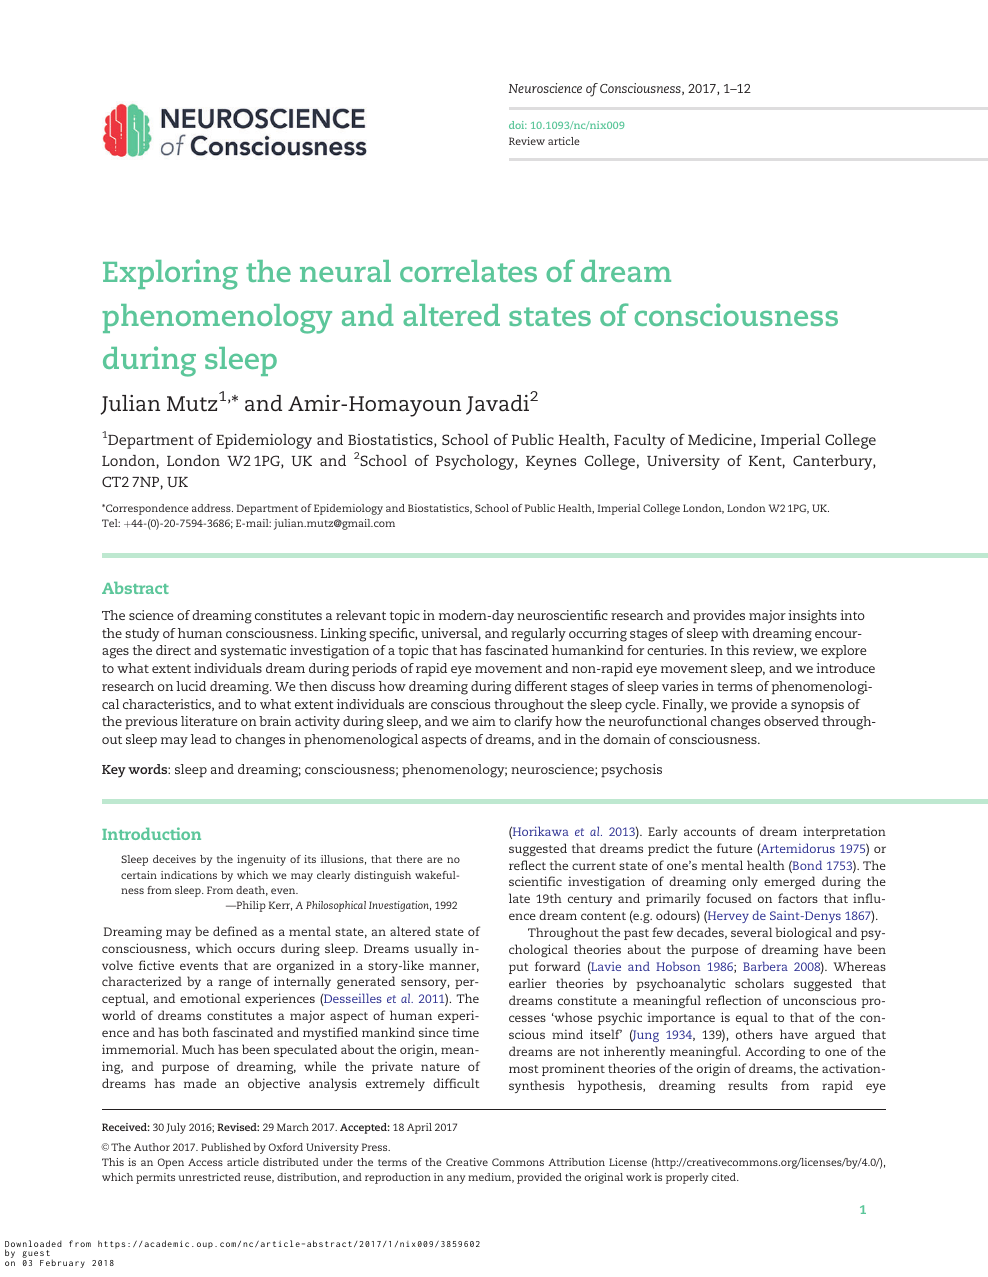 Exploring the neural correlates of dream phenomenology and